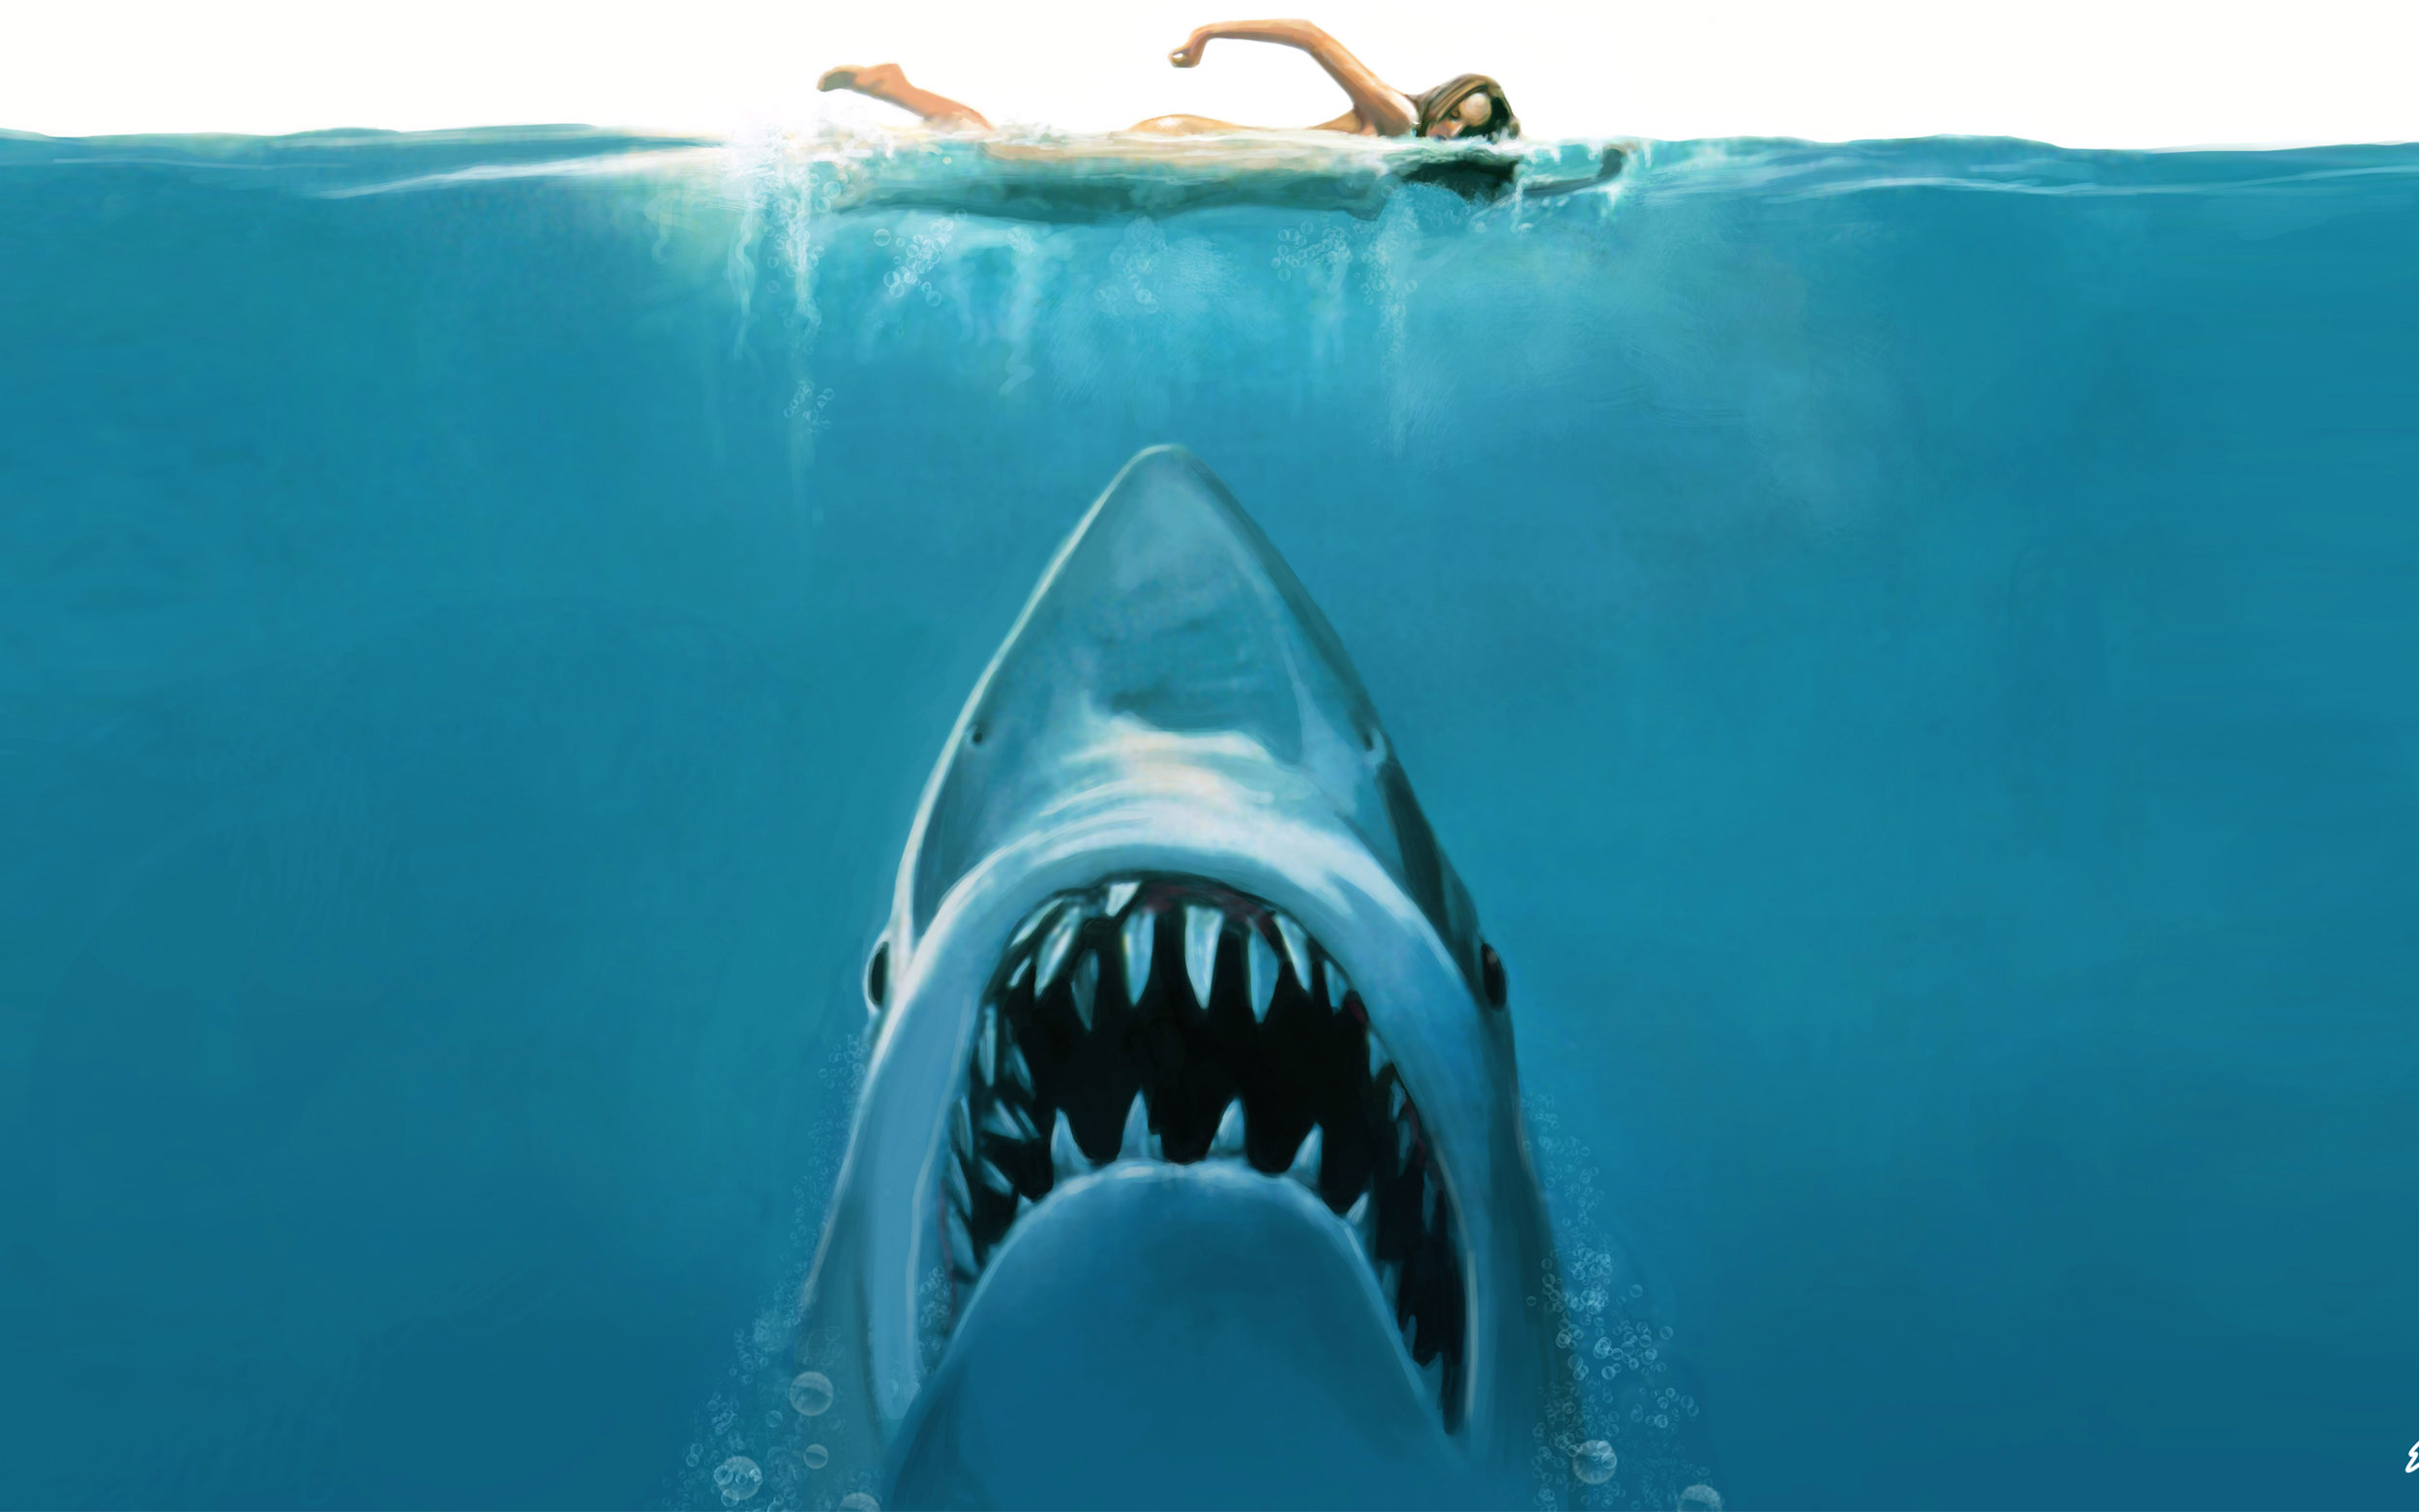 The classic poster for Jaws